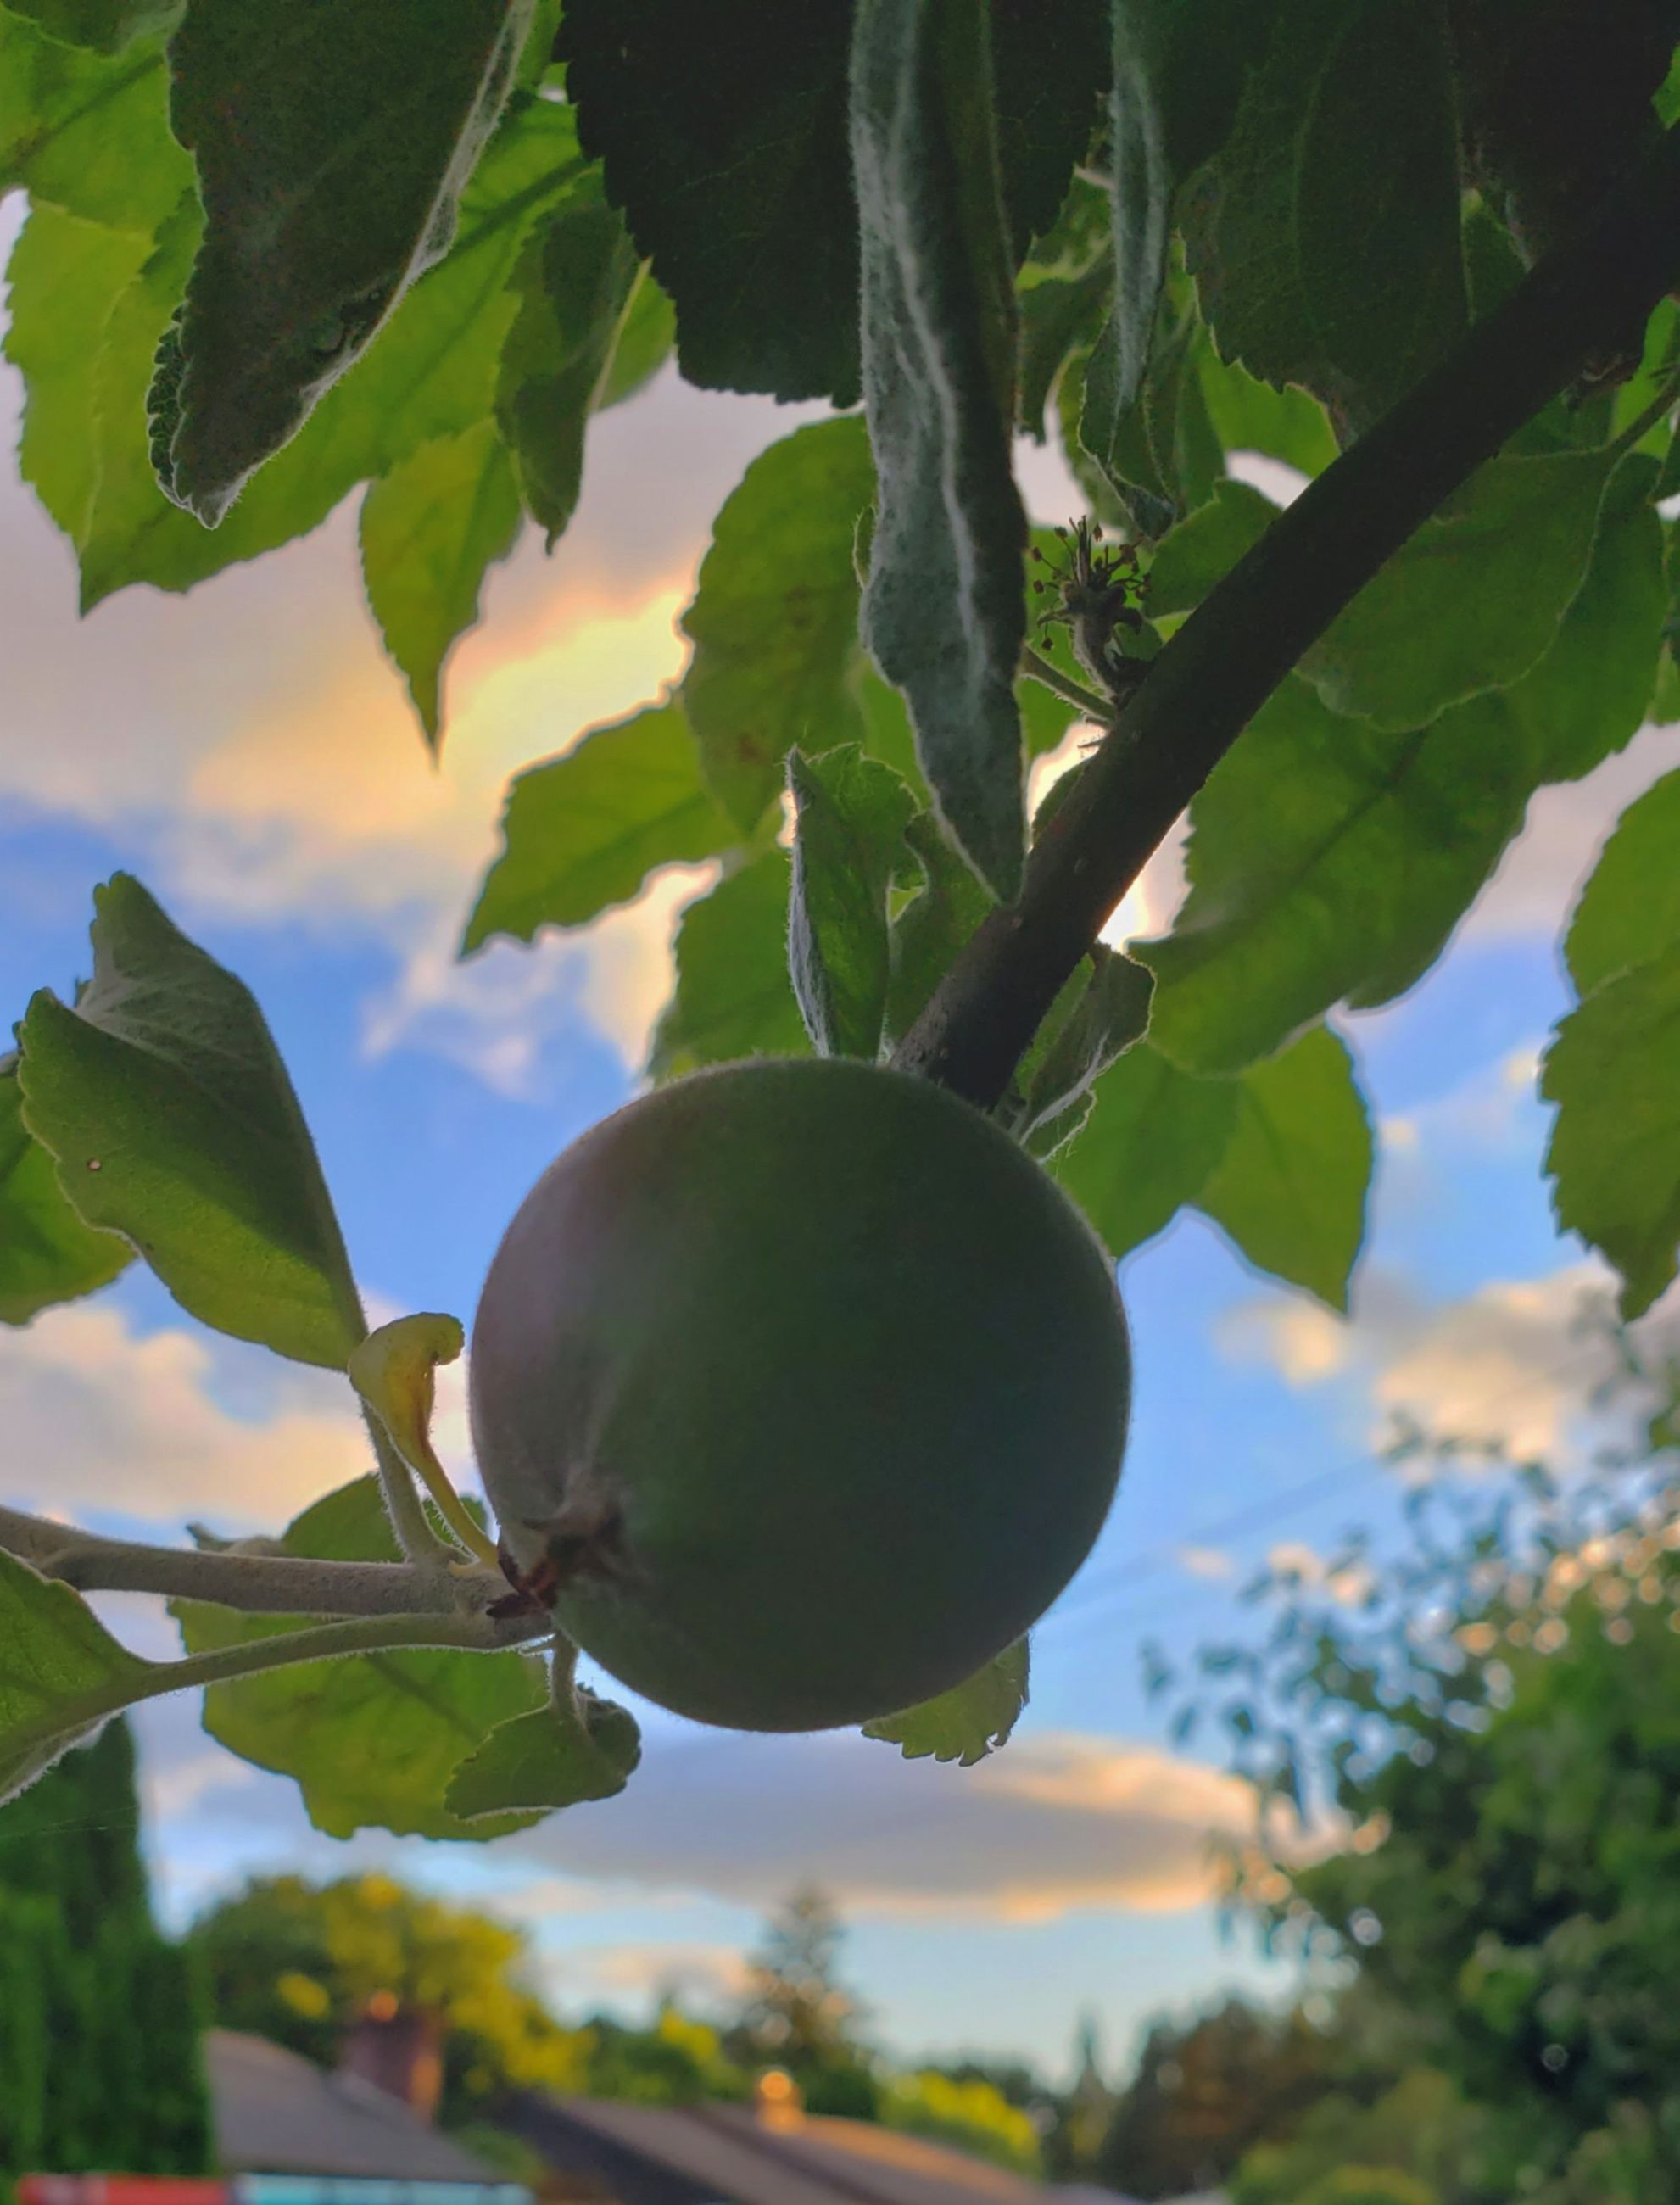 fruit, tree, food, food and drink, healthy eating, plant, green, branch, leaf, plant part, growth, produce, nature, agriculture, freshness, flower, wellbeing, fruit tree, no people, hanging, outdoors, ripe, day, focus on foreground, close-up, sky, organic, low angle view, landscape, crop